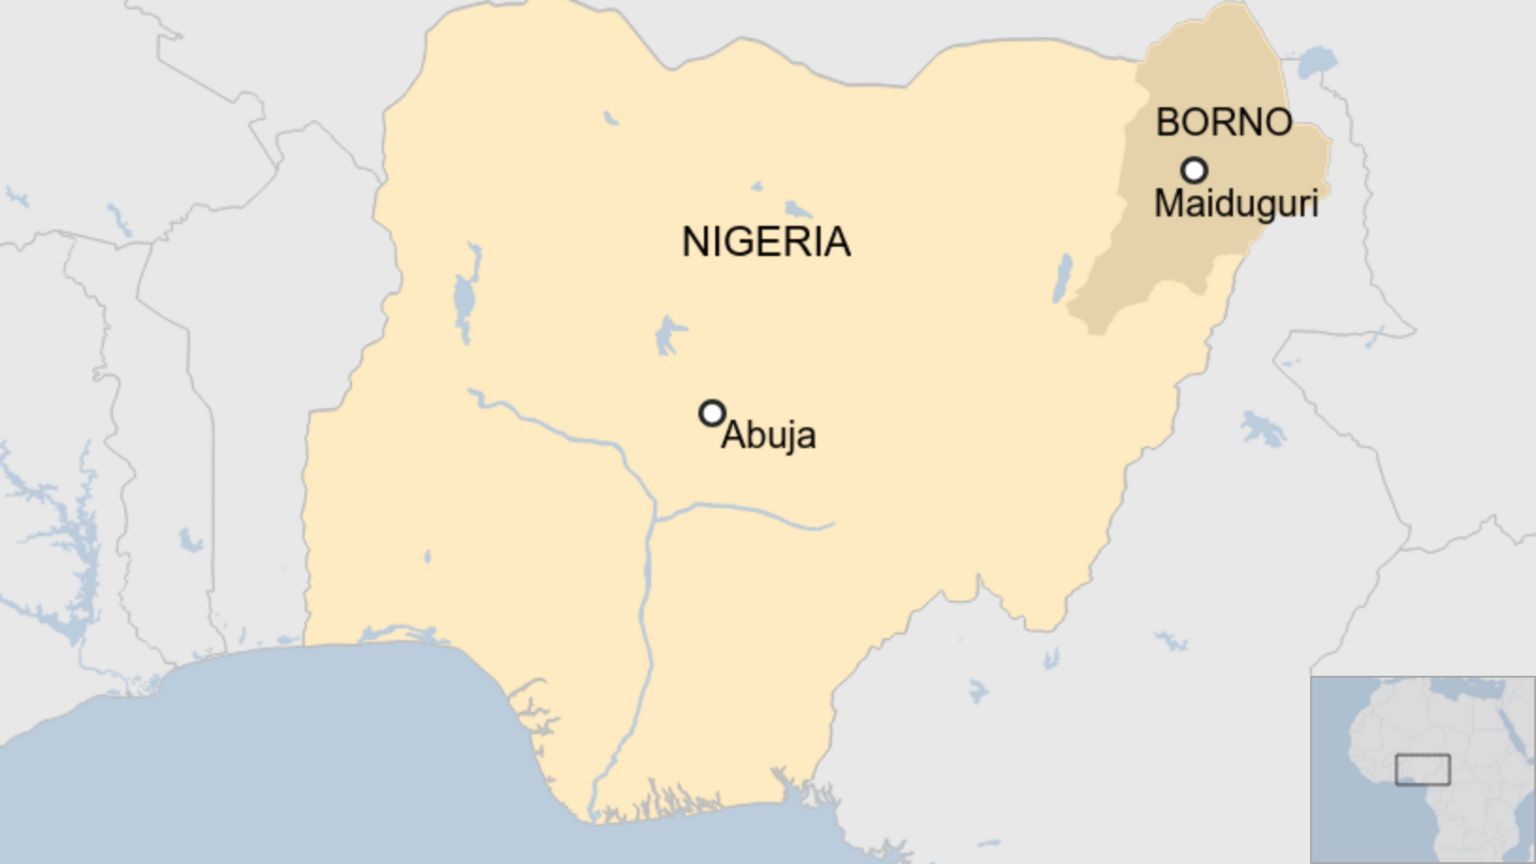 Map showing location of Borno